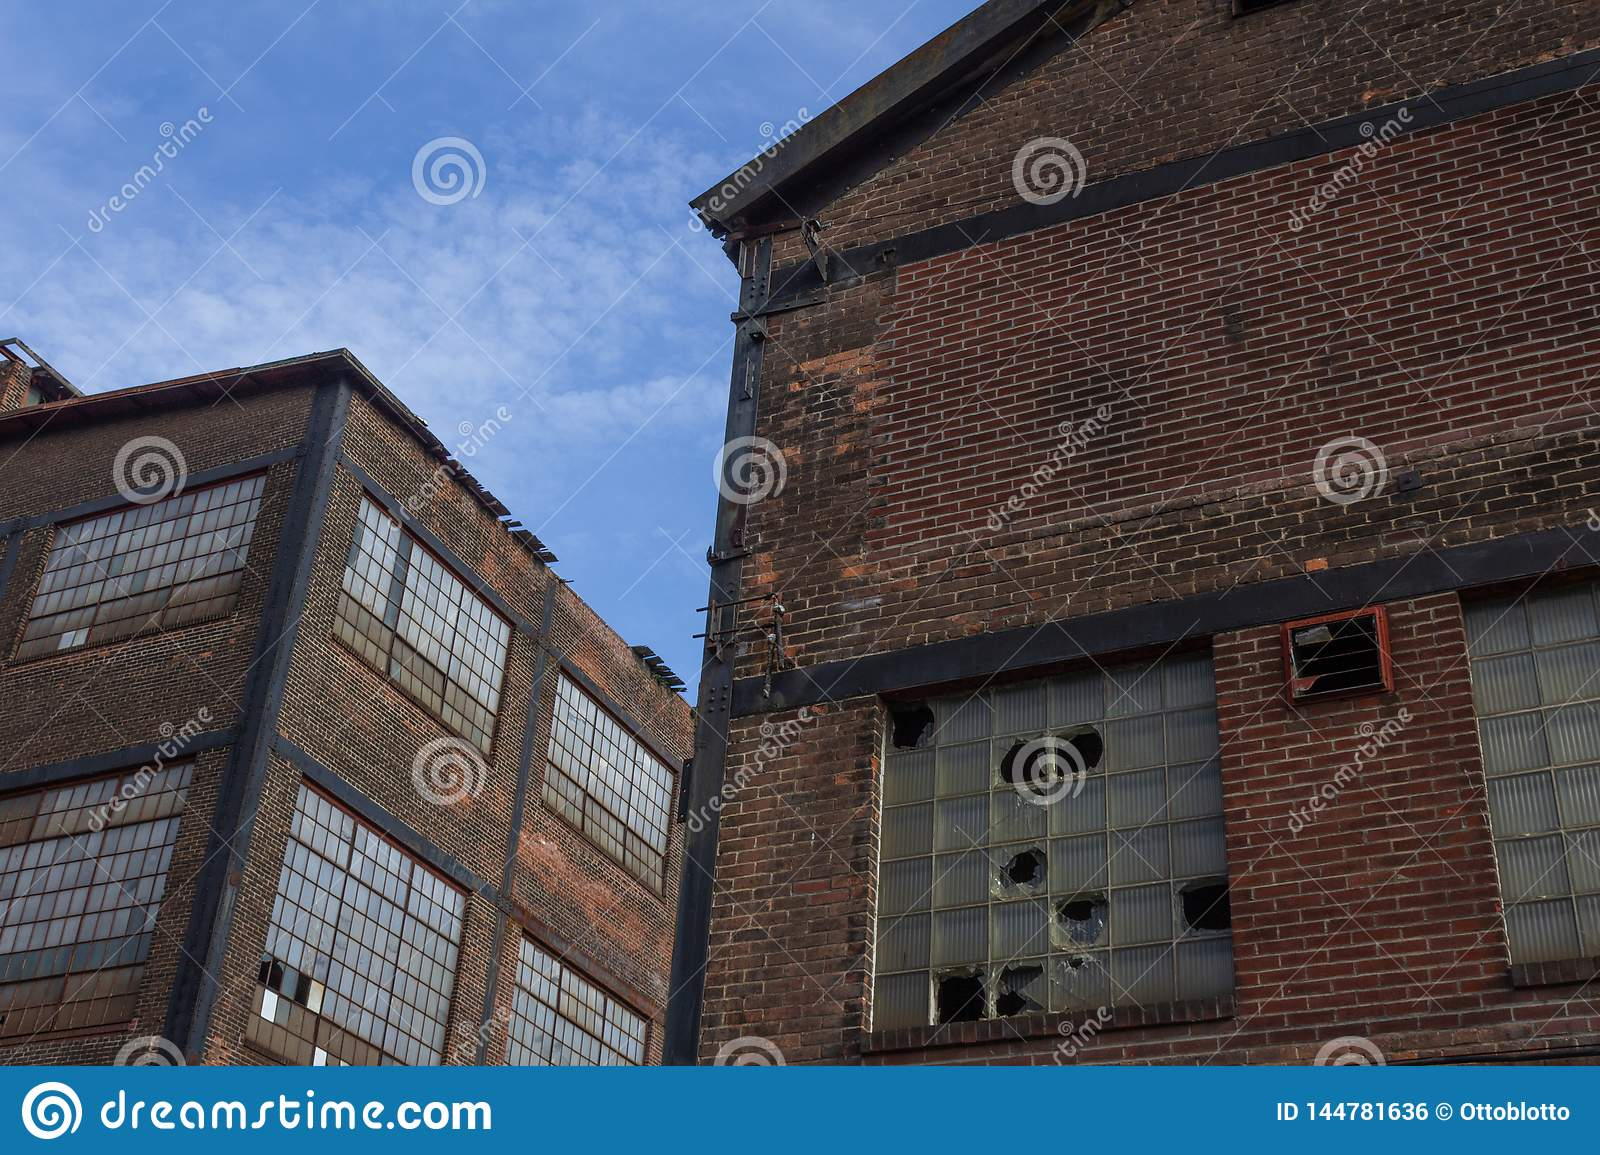 Two abandoned industrial buildings against a blue sky